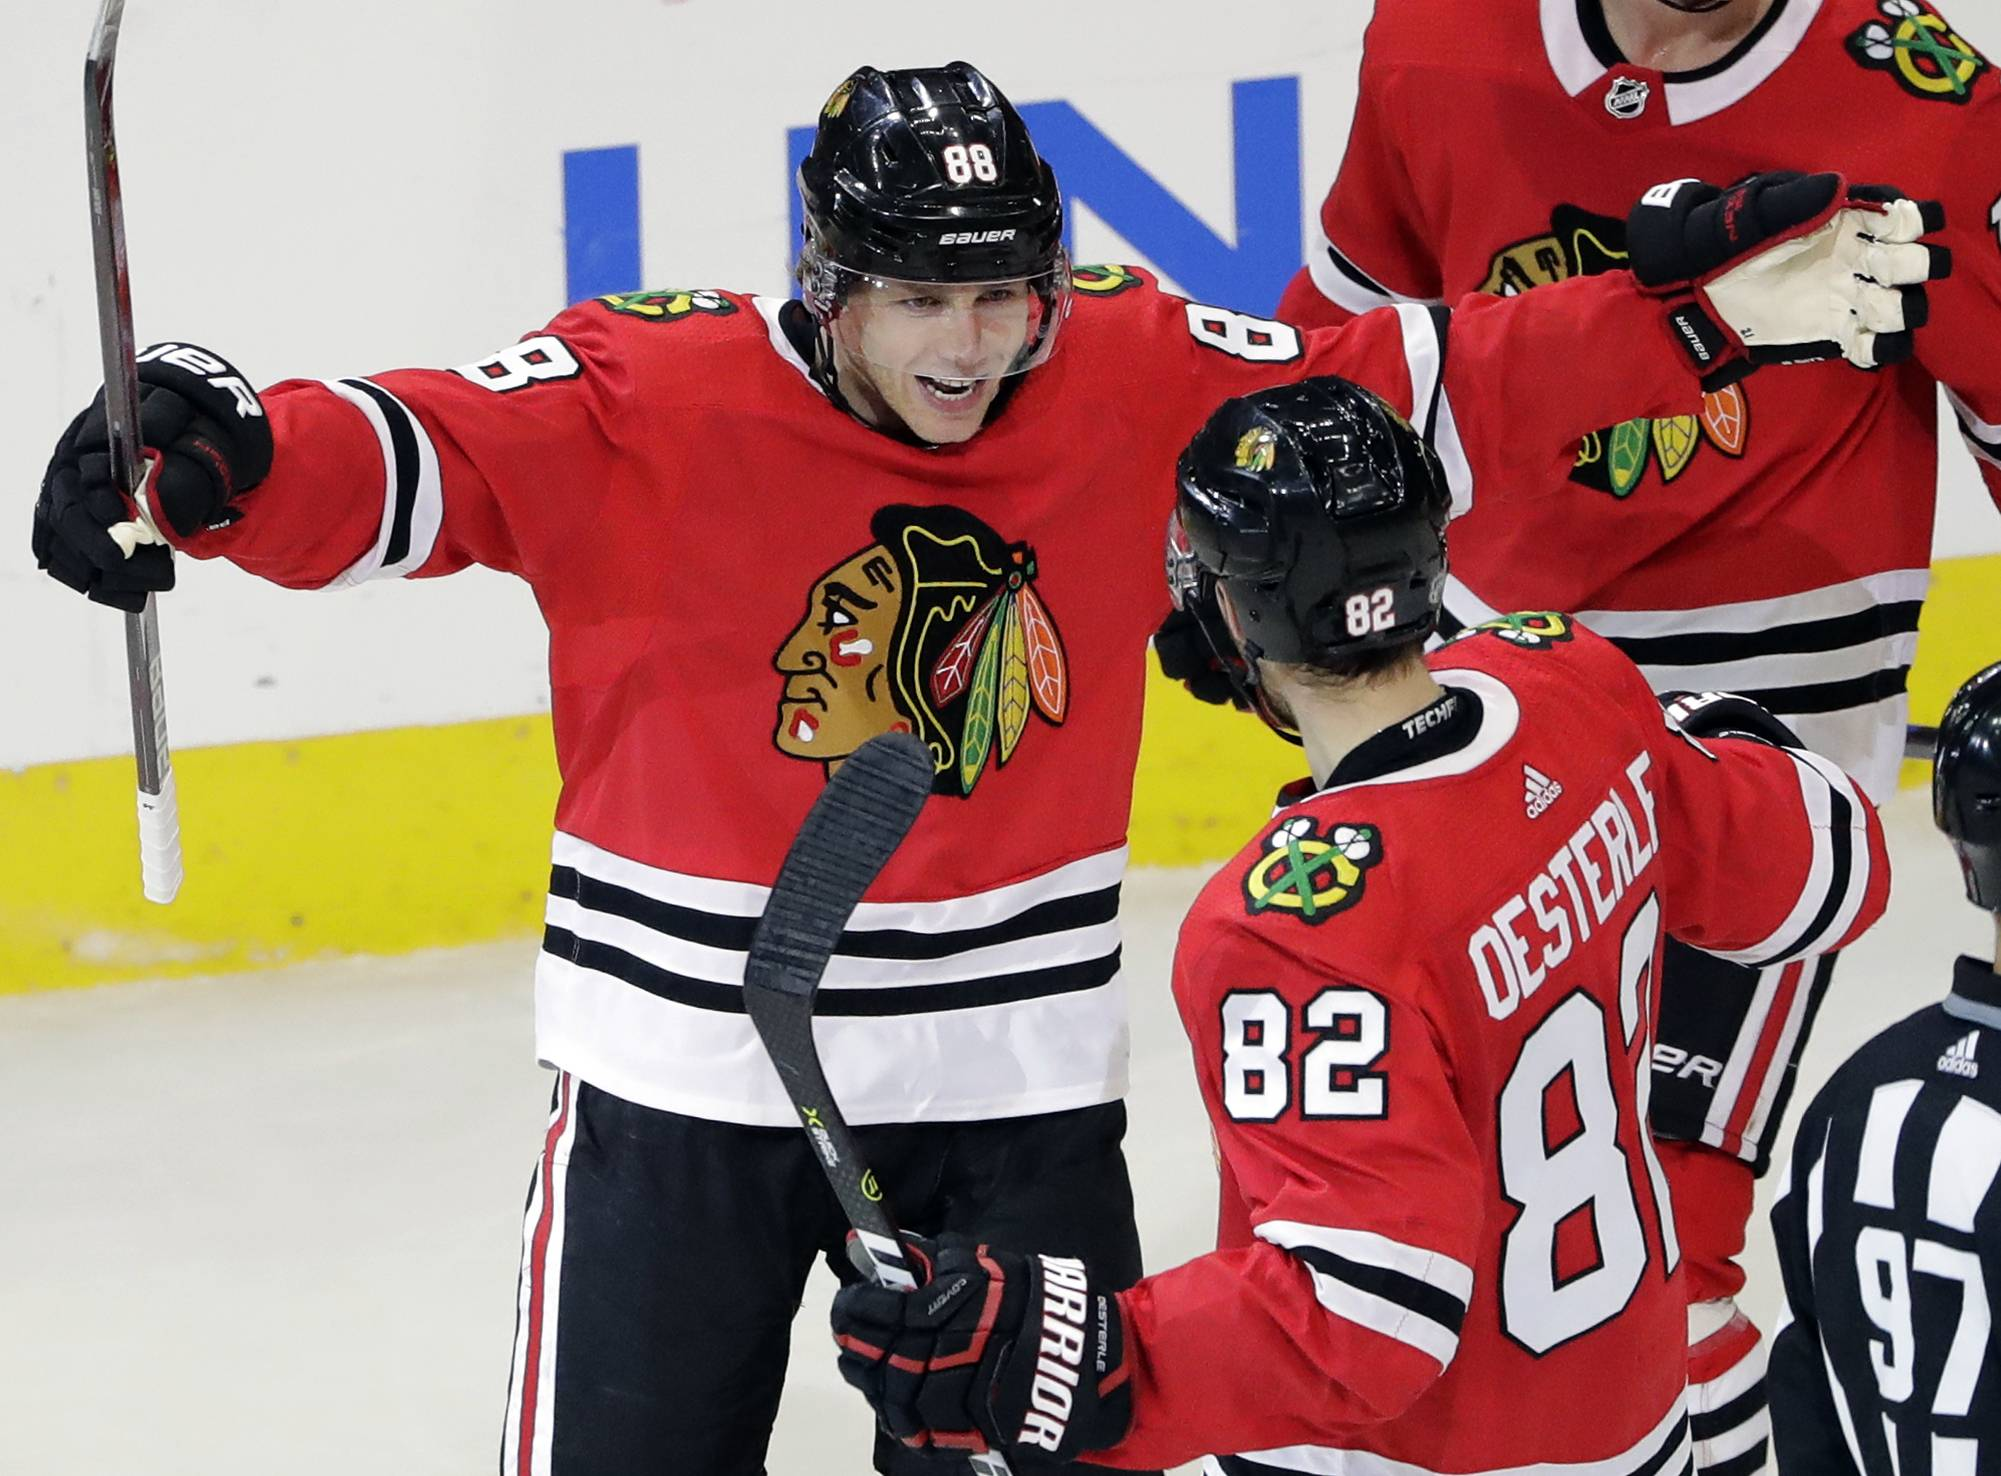 Chicago Blackhawks right wing Patrick Kane, celebrates with defenseman Jordan Oesterle after scoring a goal against the Minnesota Wild during the second period of an NHL hockey game, Sunday, Dec. 17, 2017, in Chicago. (AP Photo/Nam Y. Huh)